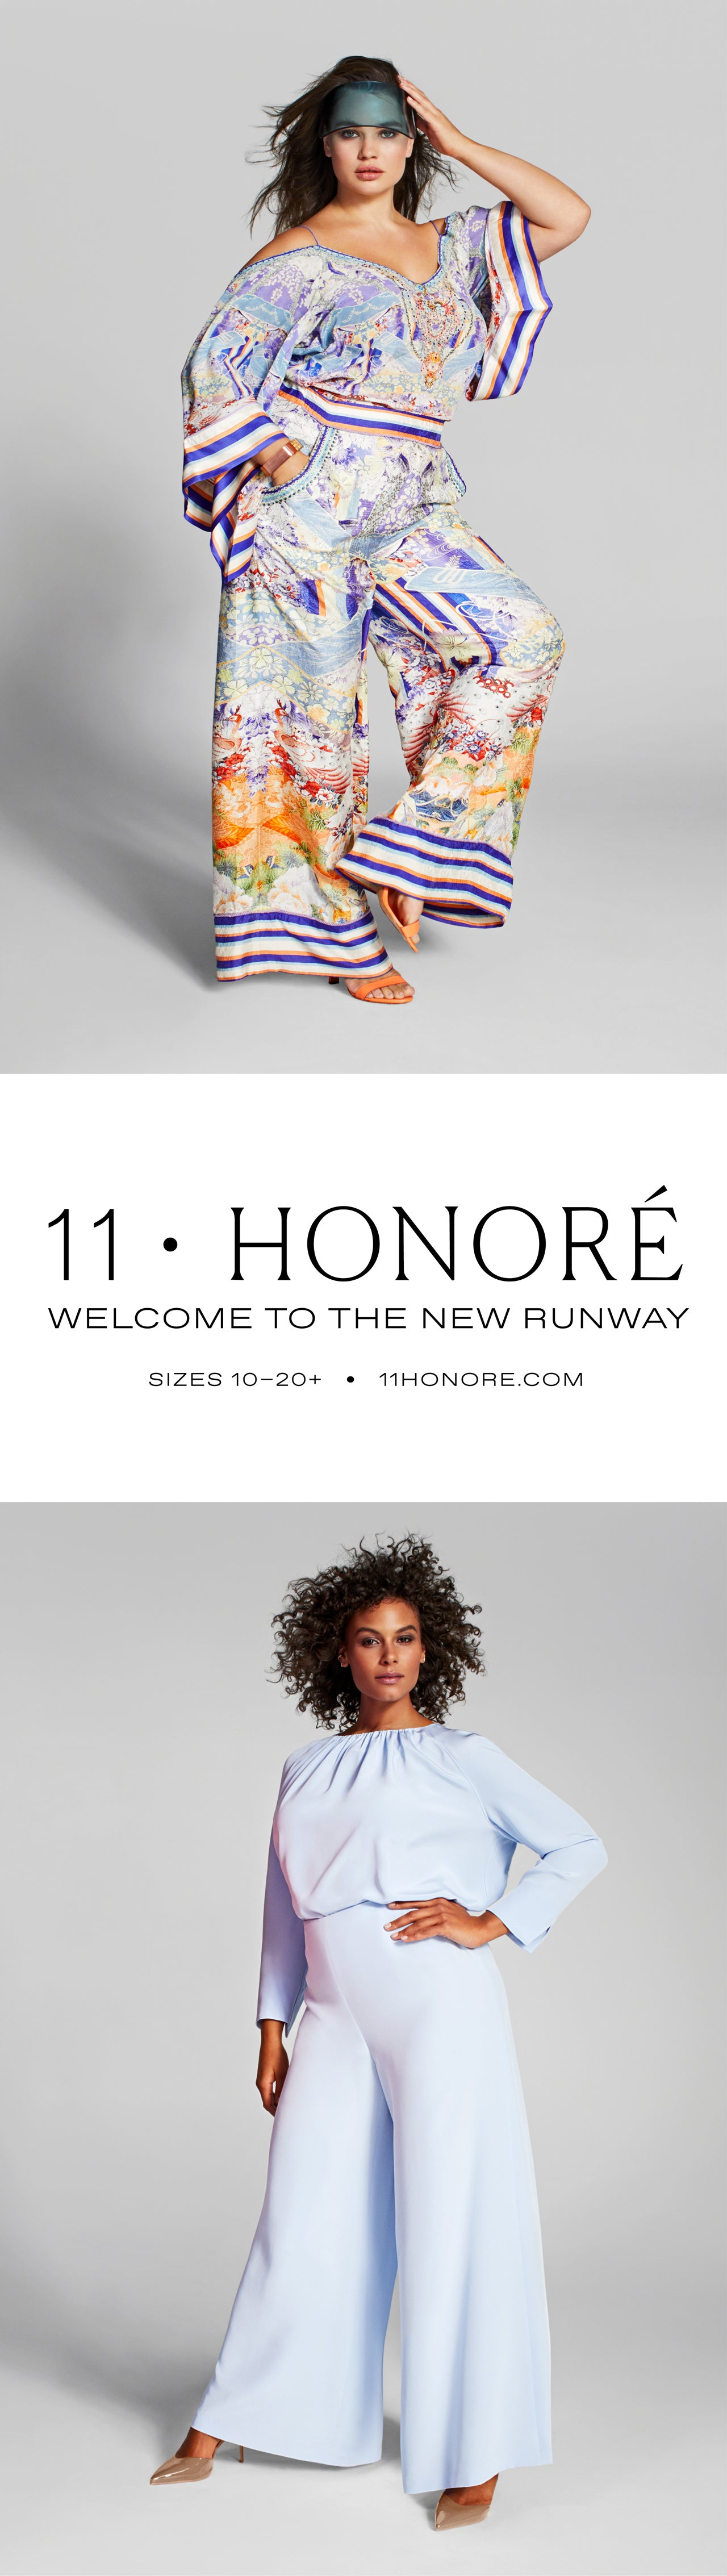 11 Honoré, welcome to the new runway. Sizes 12-24